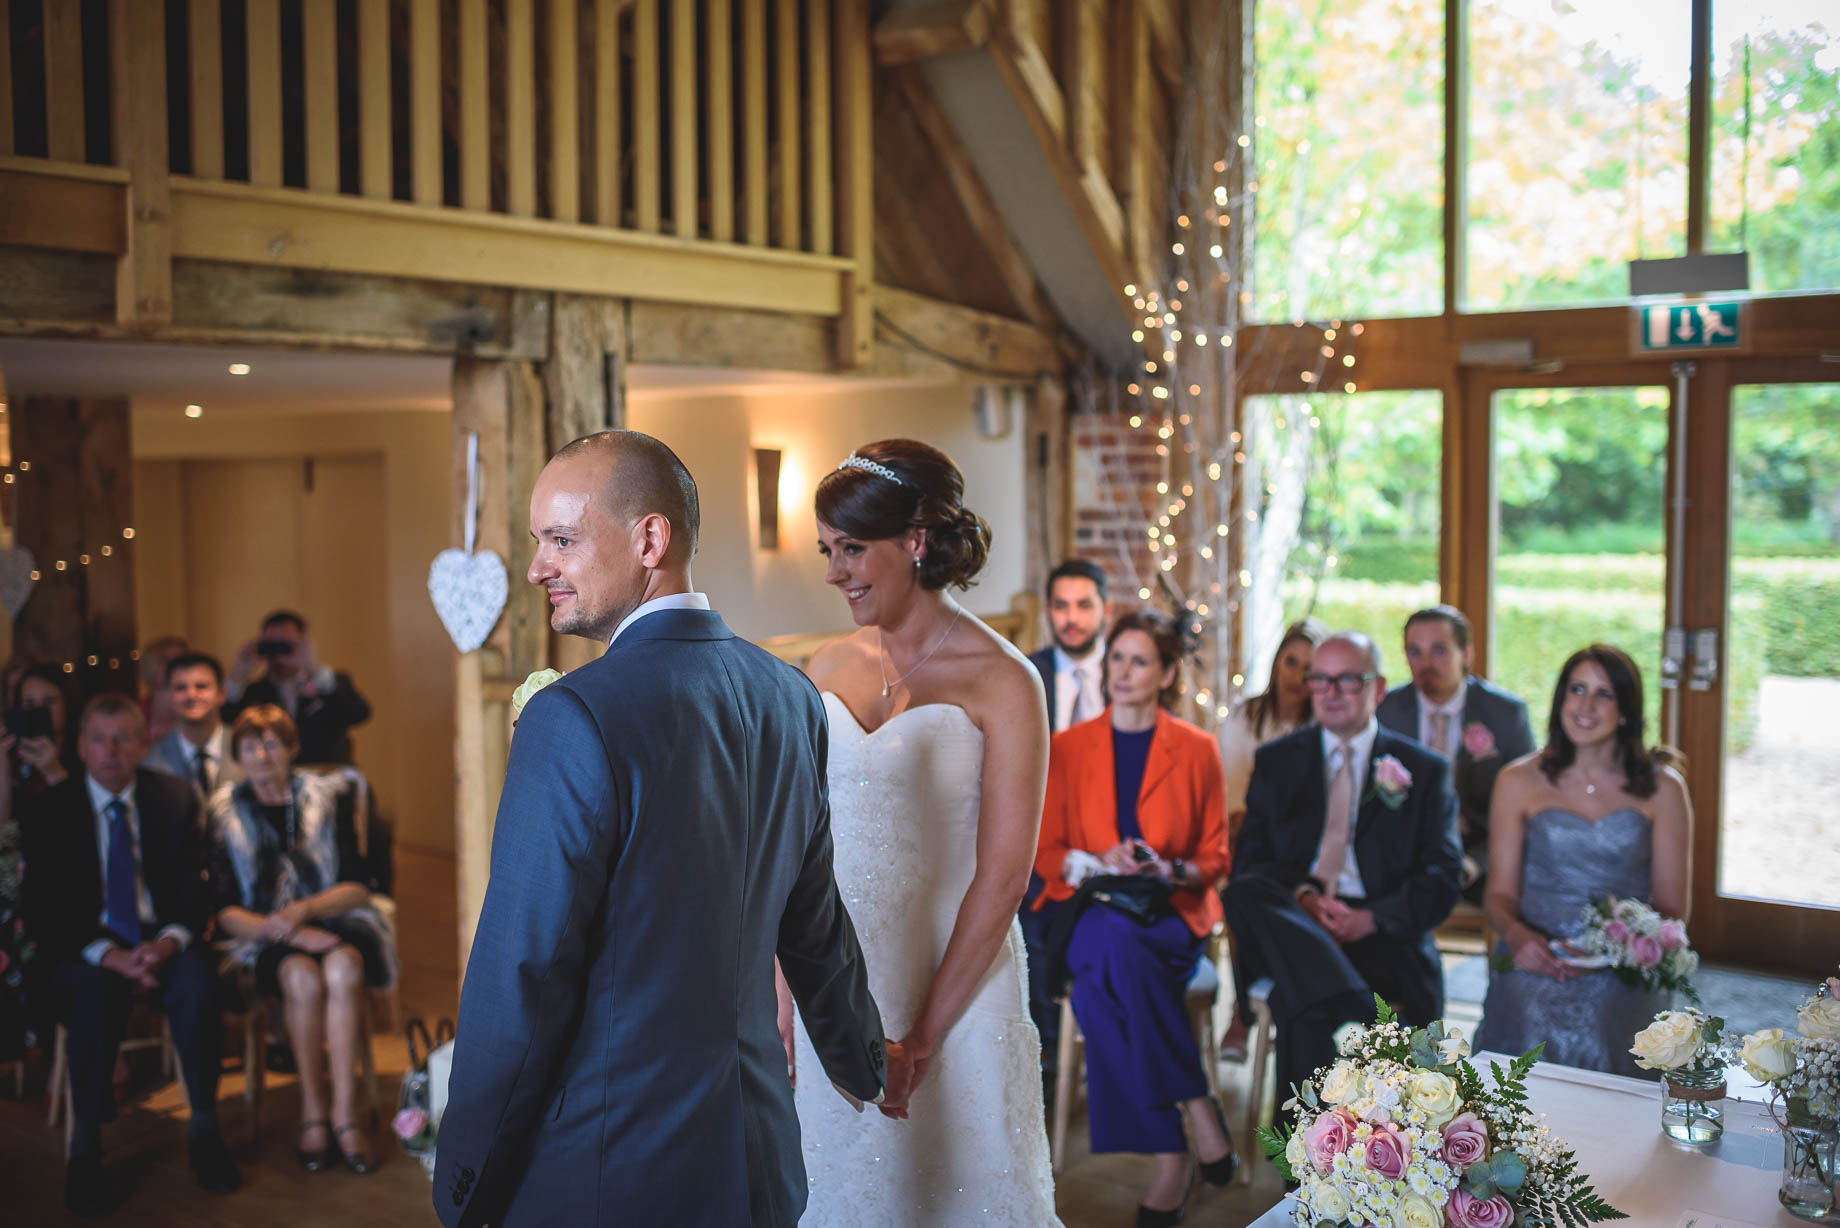 Bury Court Barn wedding photography - Guy Collier Photography - Karen and John (56 of 166)